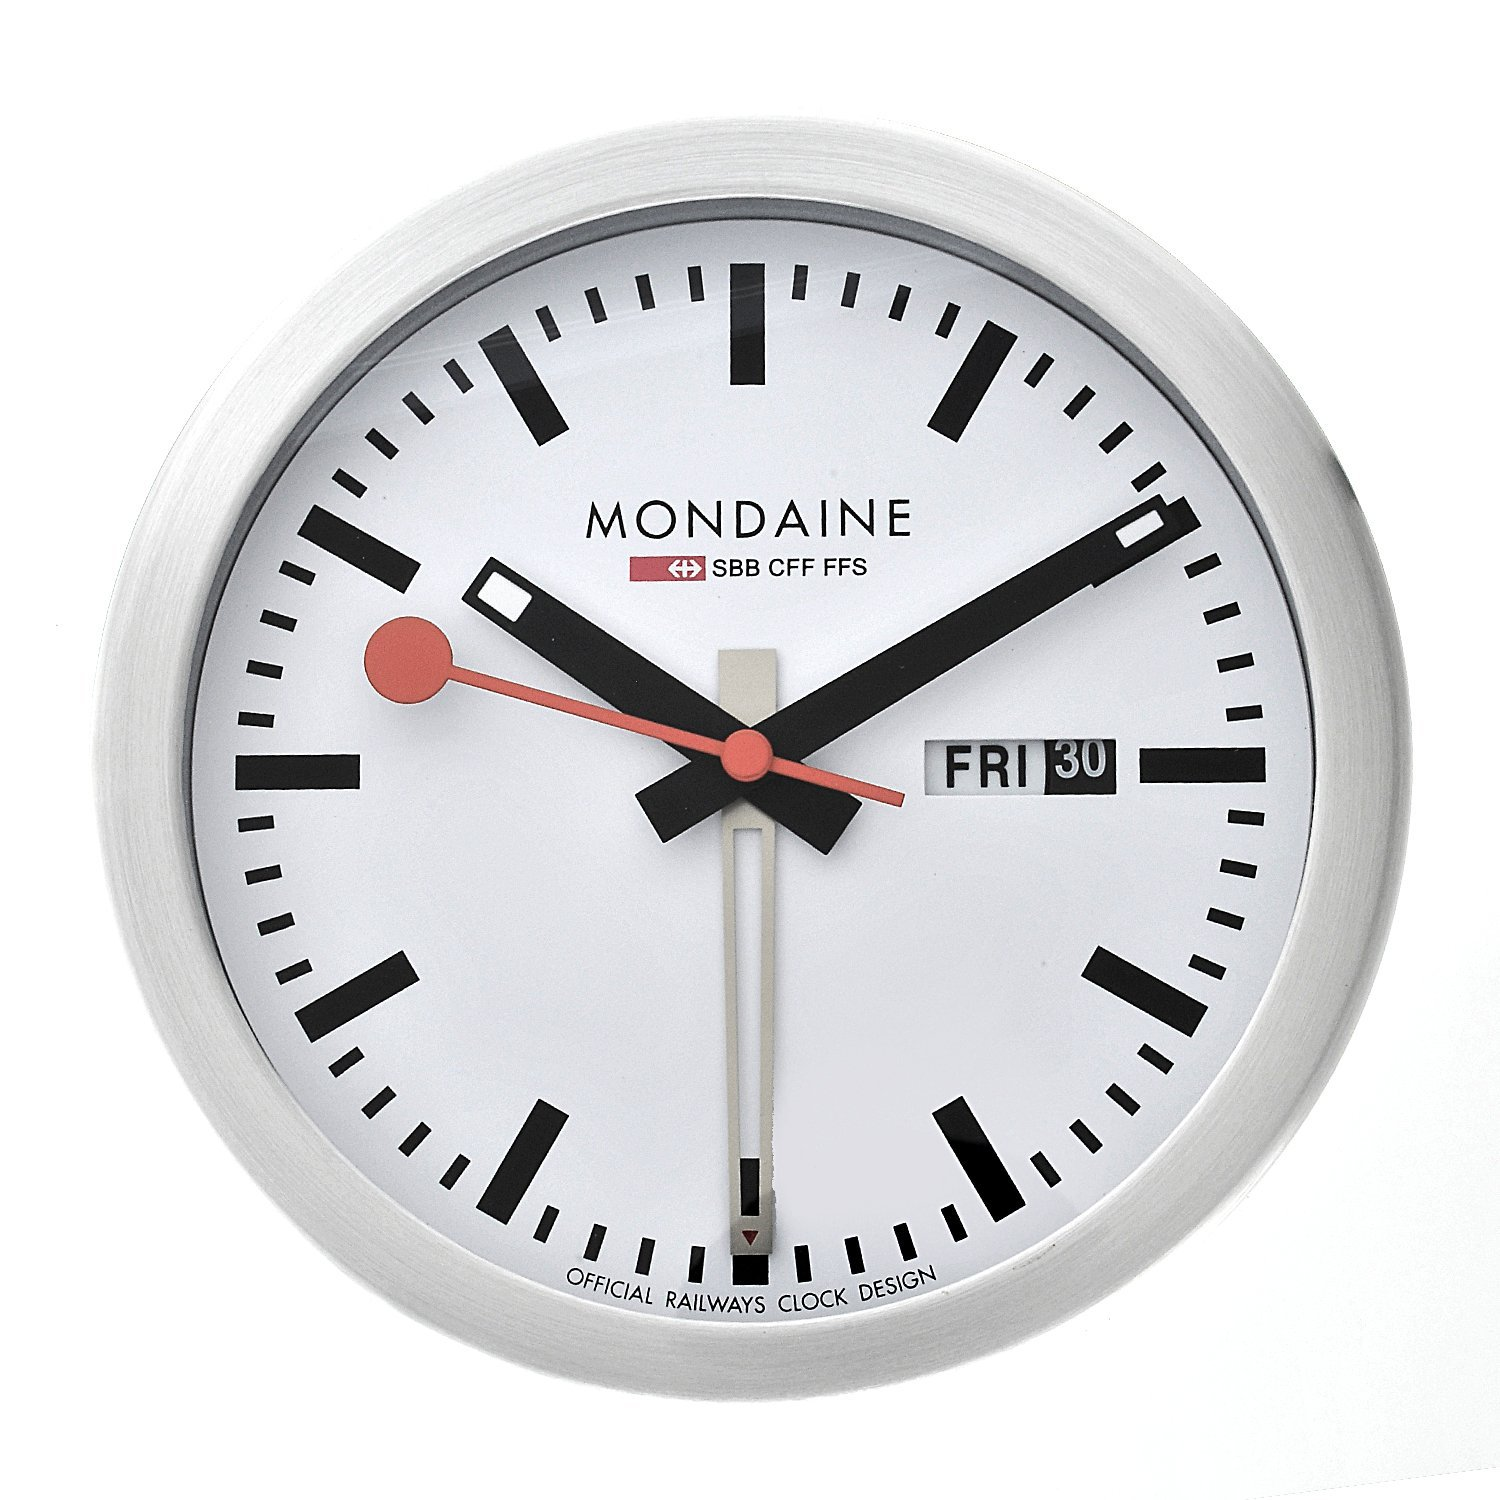 Mondaine Mini Clock Alarm